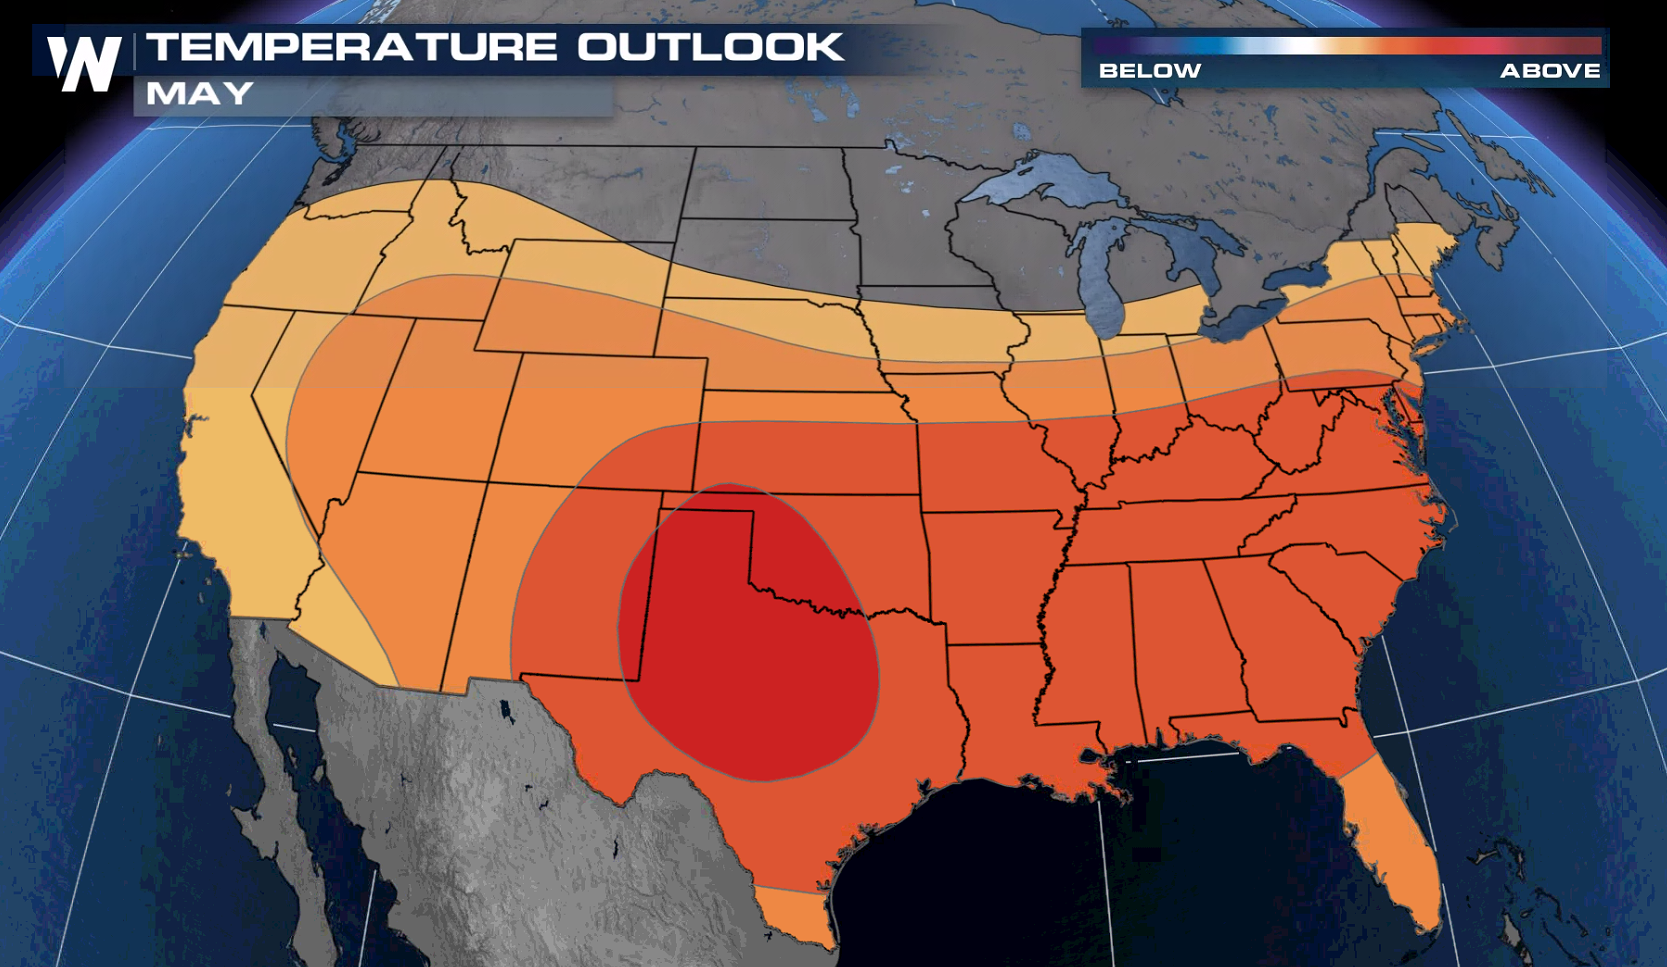 Warmer than Average Temperatures Forecast for May